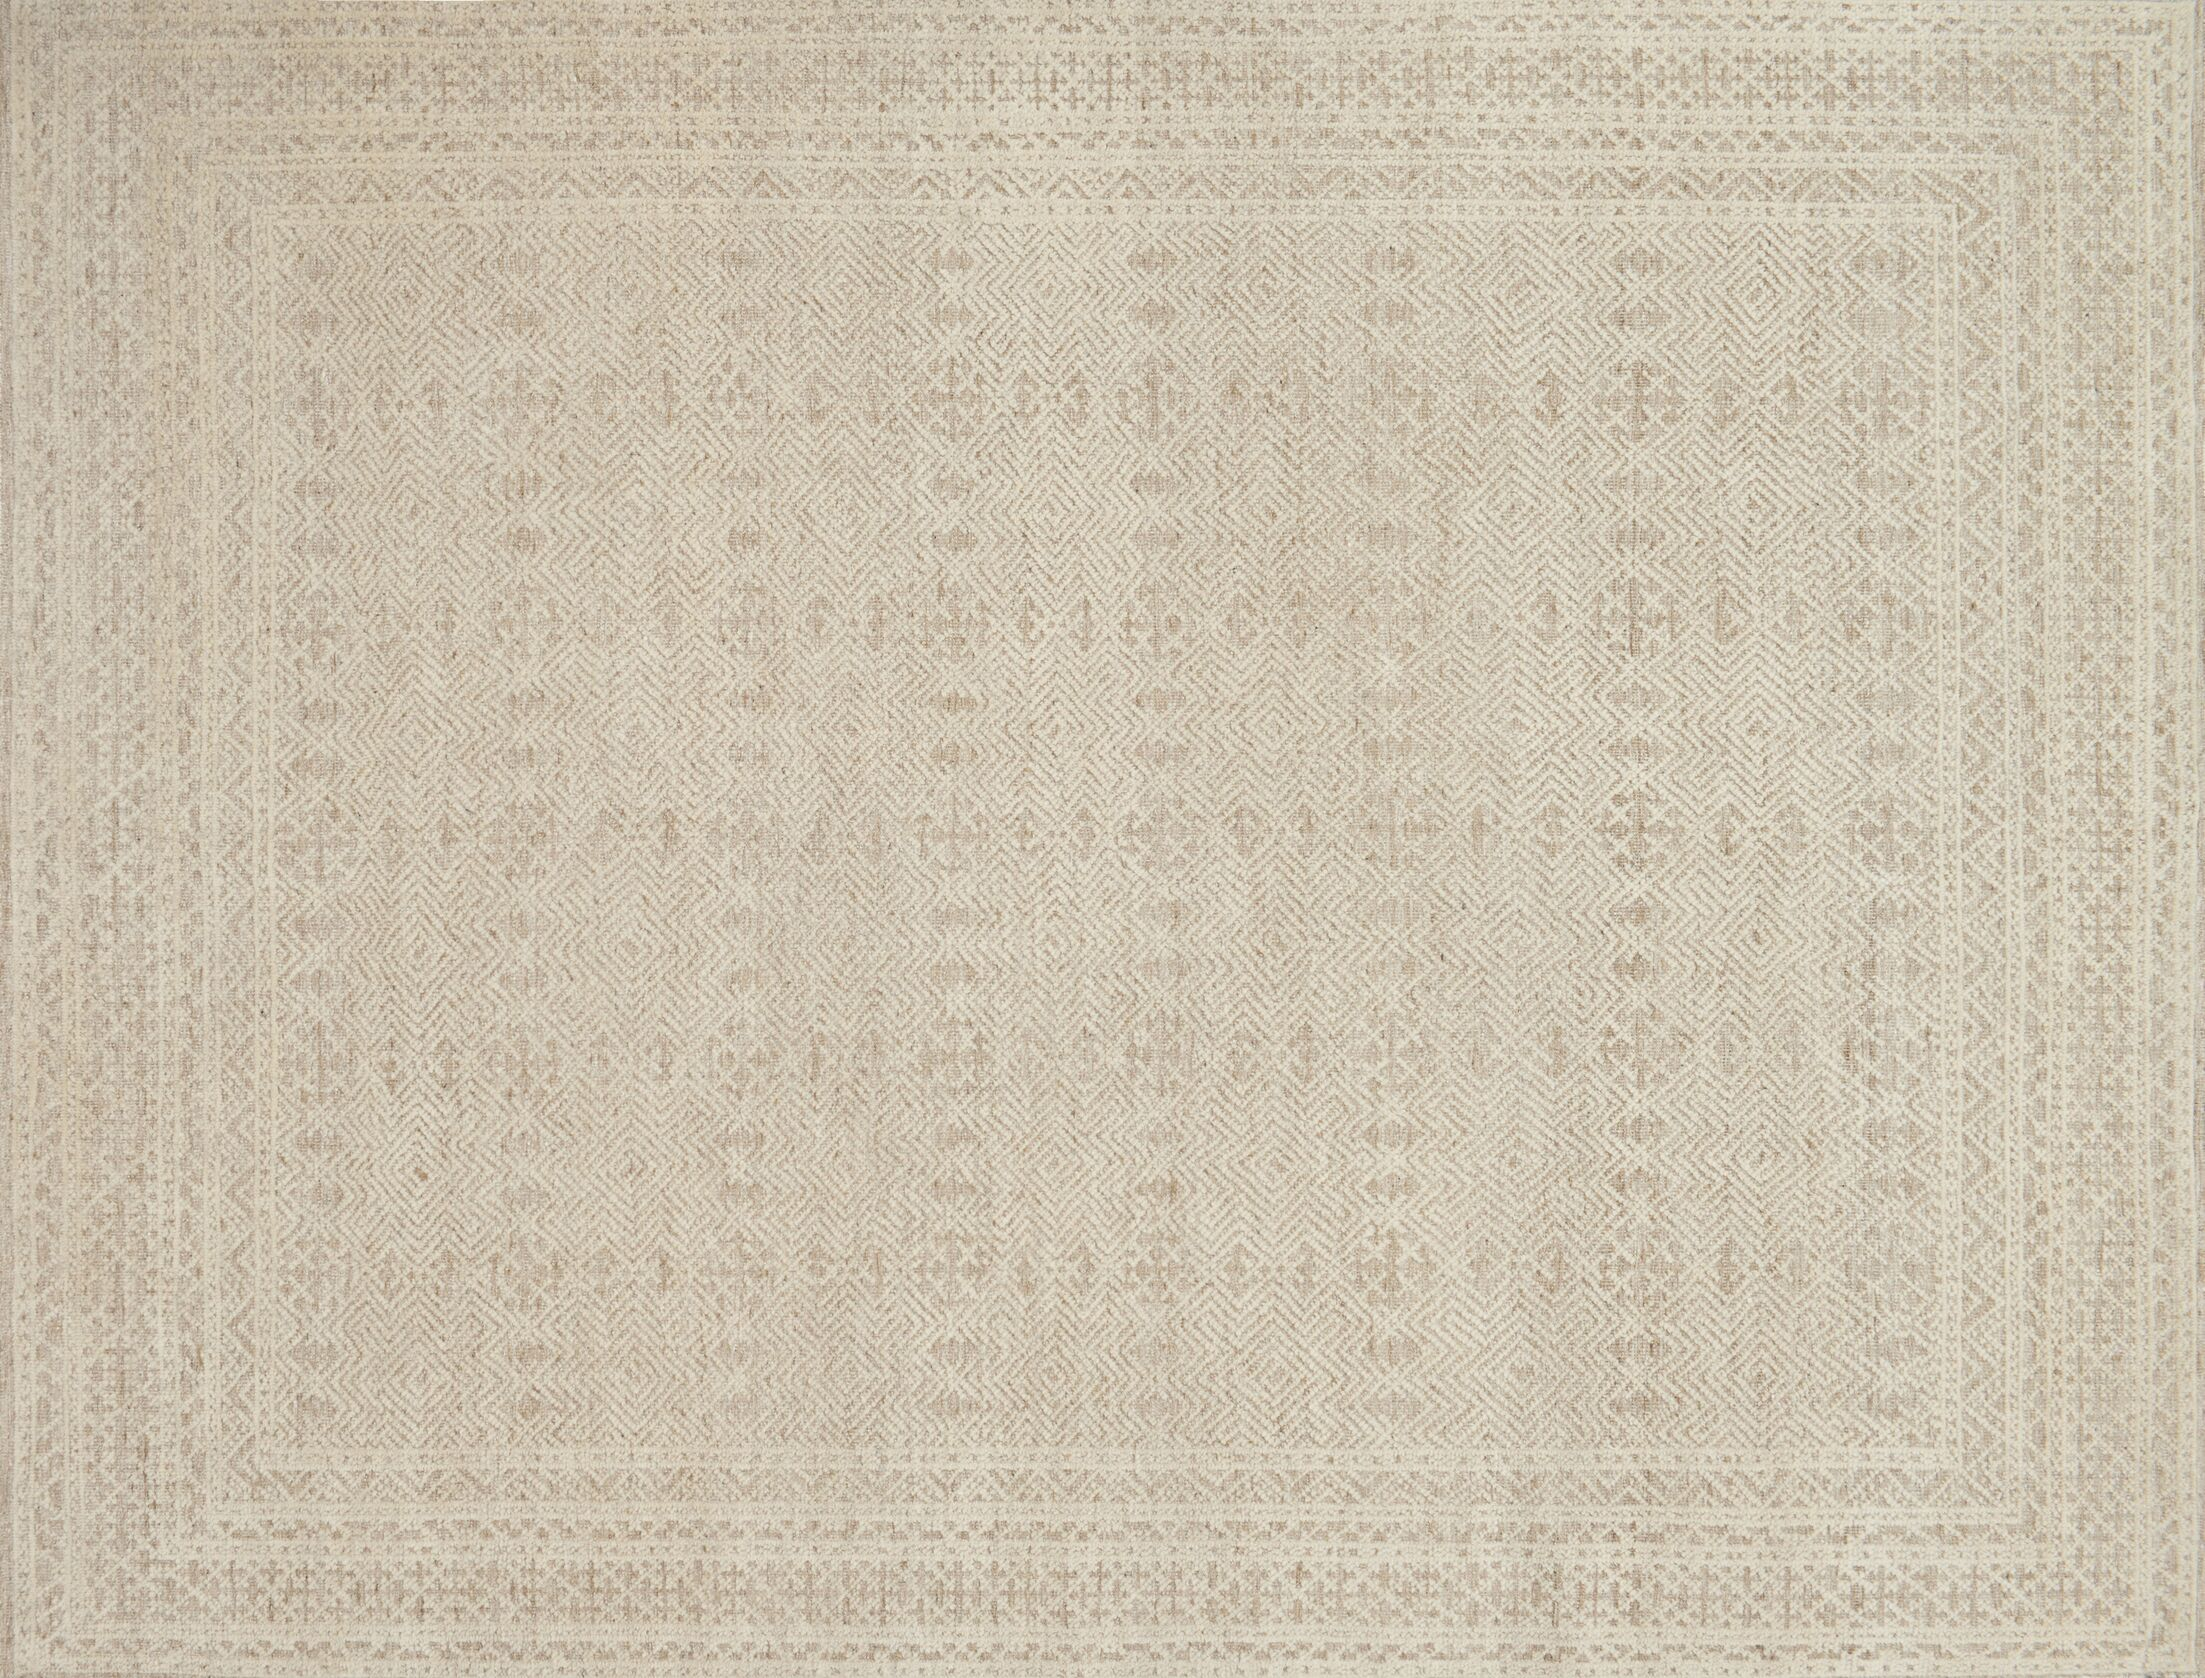 Parkerson Hand-Knotted Gray/Ivory Area Rug Rug Size: Rectangle 4' x 6'